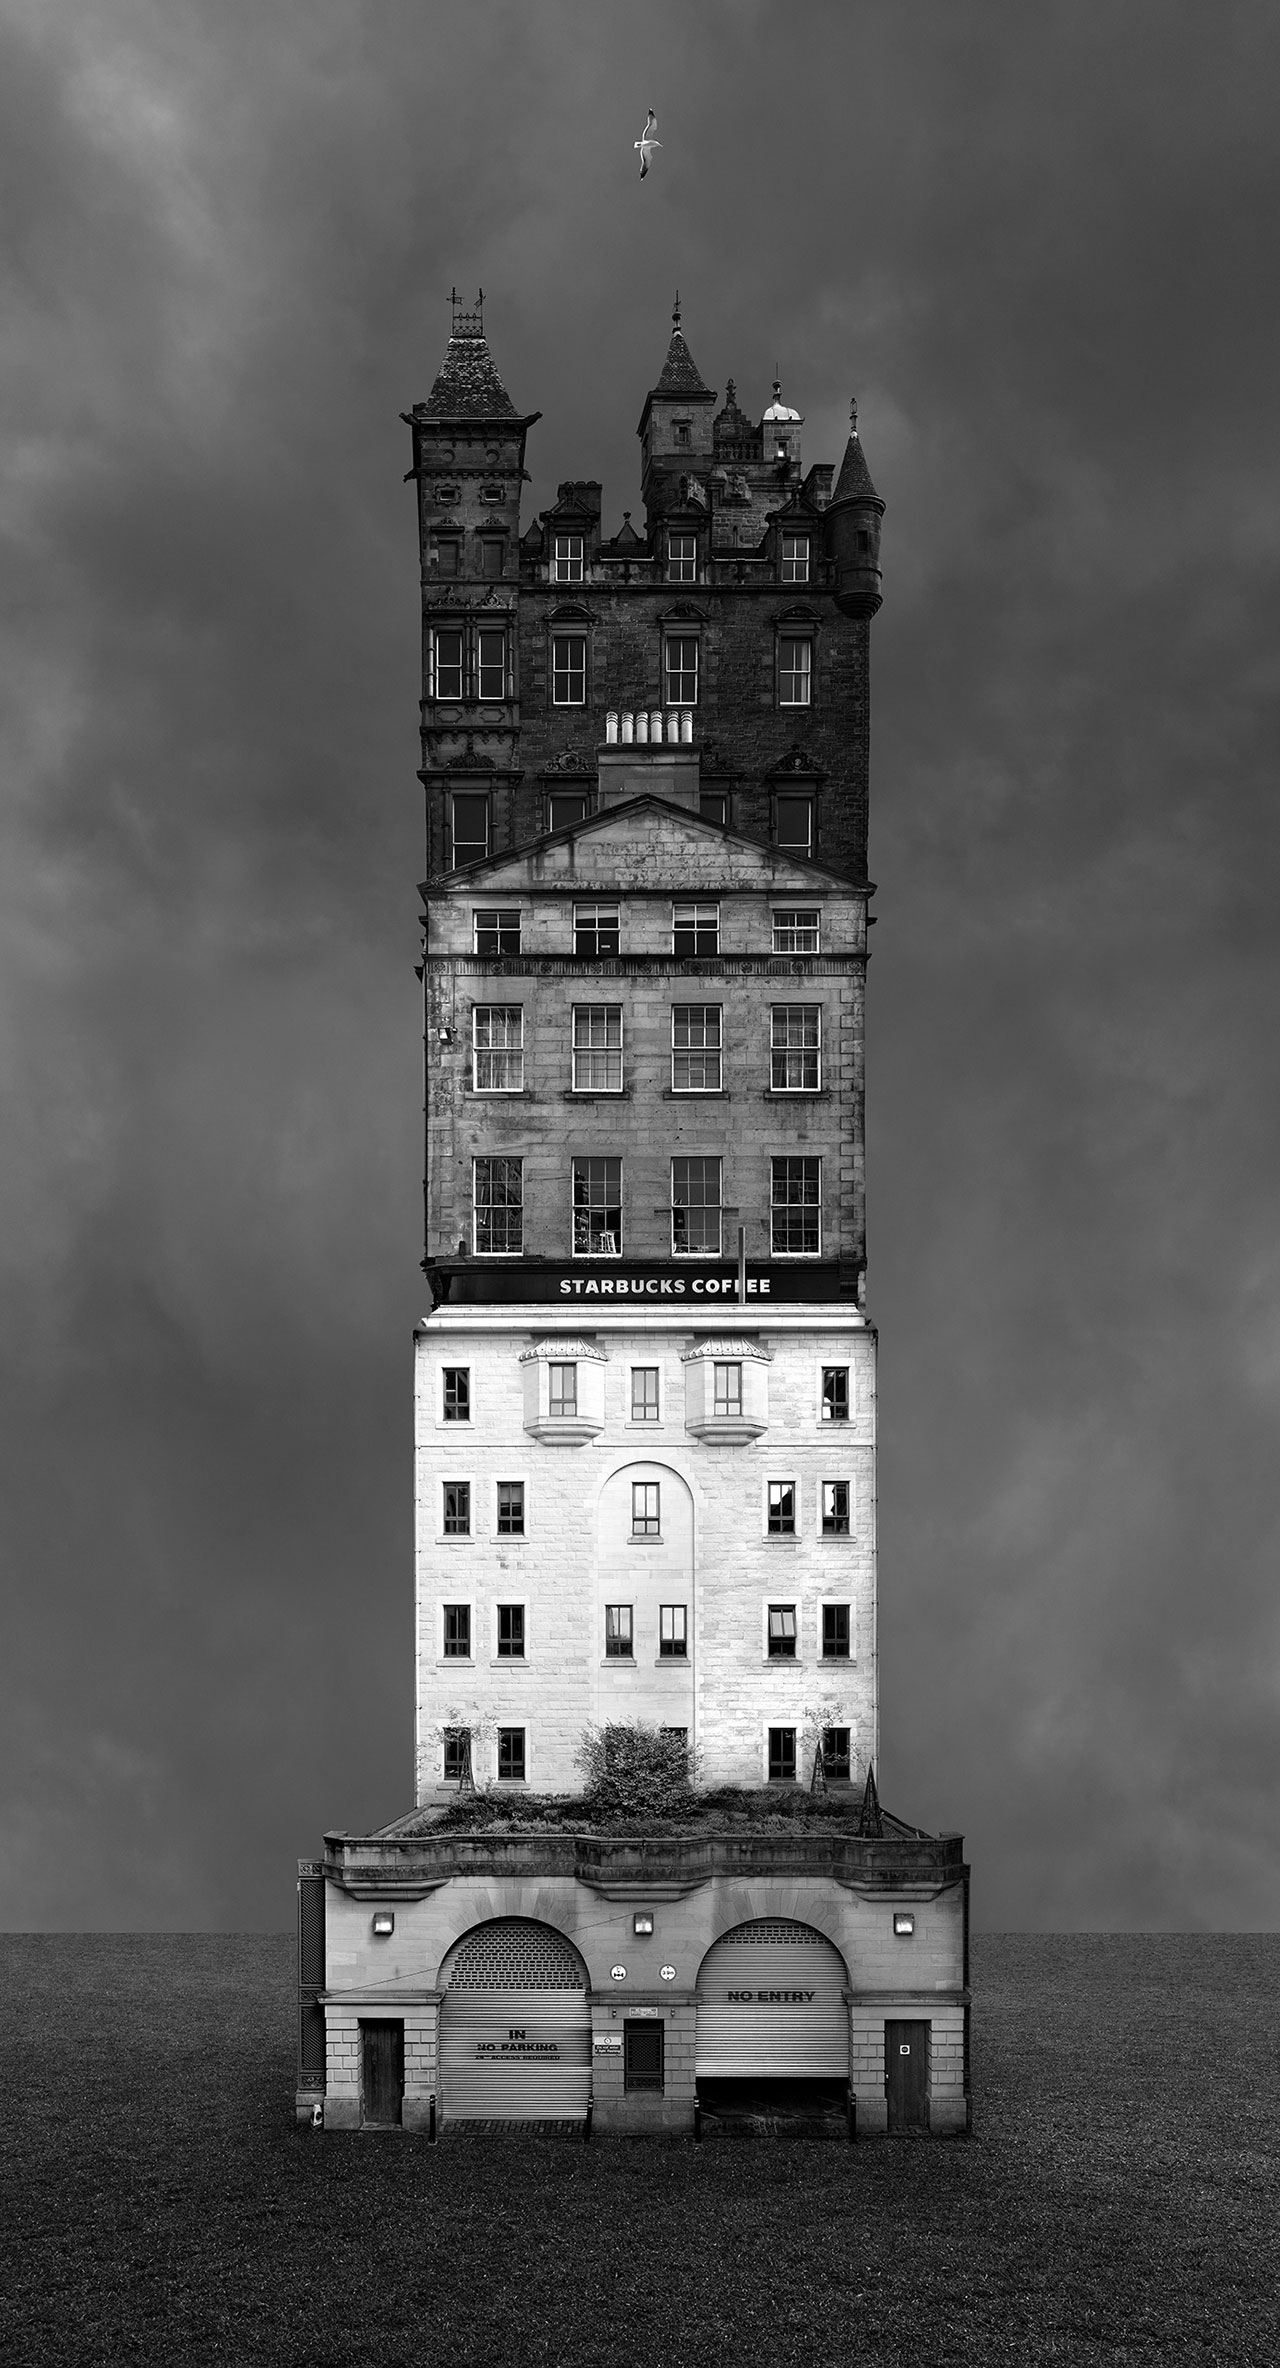 Beomsik Won, Archisculpture 014, 2013. Archival pigment print, 46x25 or 135x73cm.